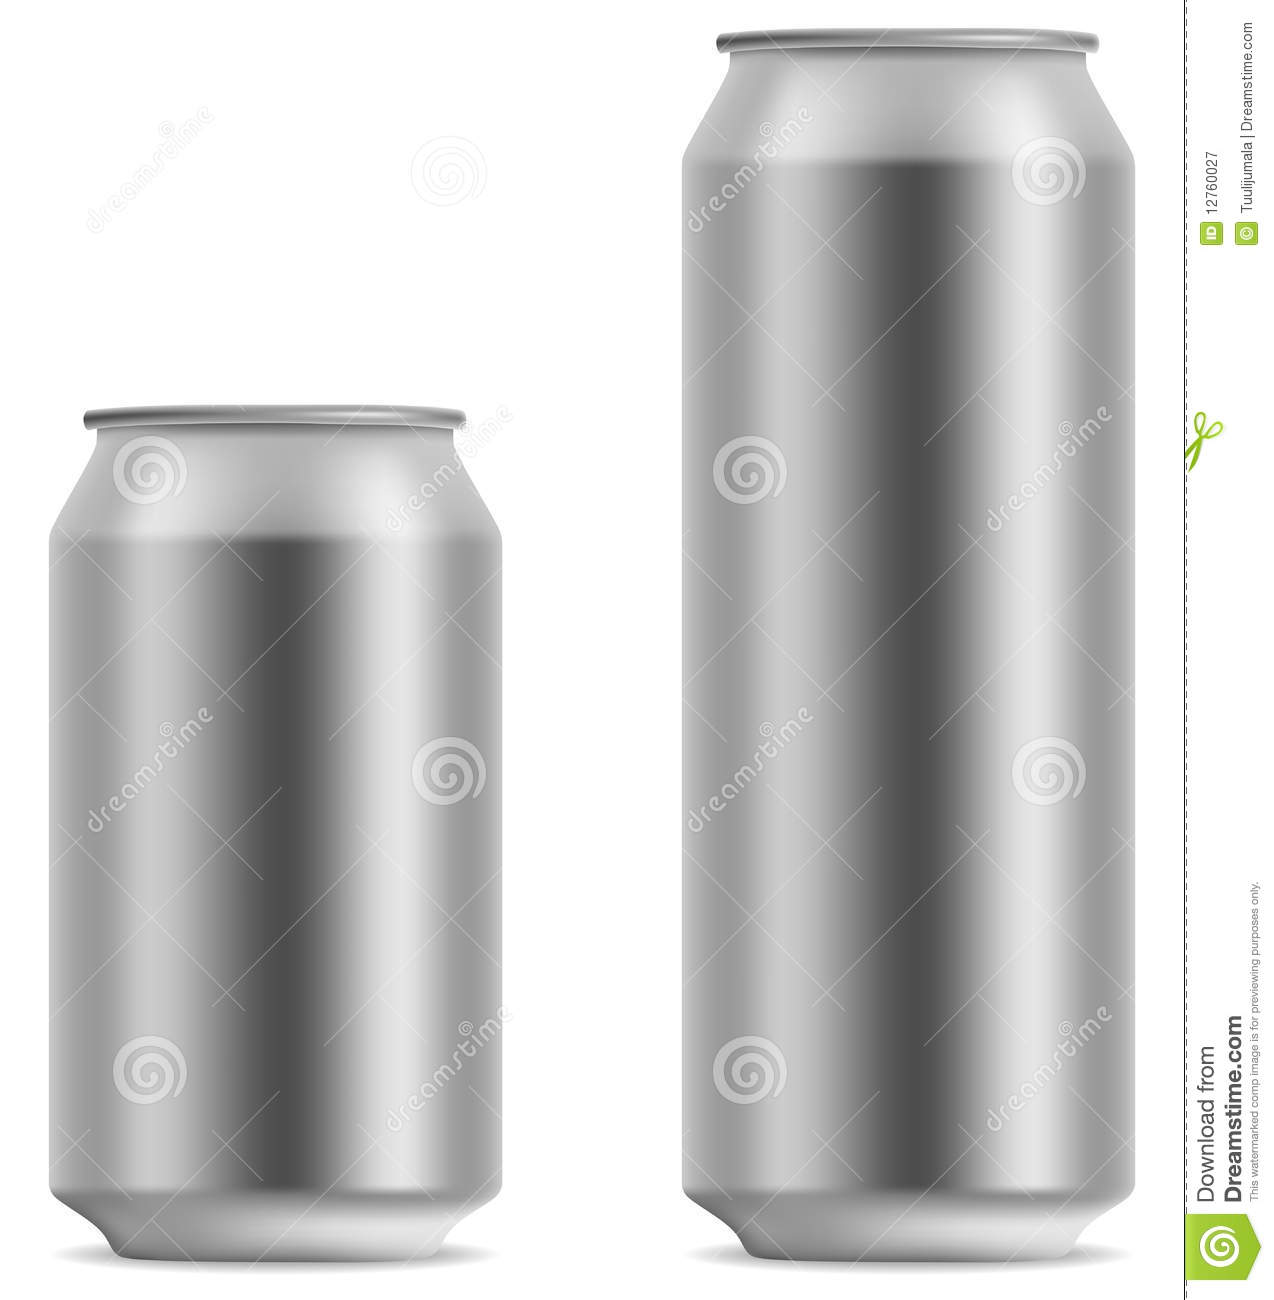 Shield design set royalty free stock photos image 5051988 - Blank Beer Can Royalty Free Stock Photography